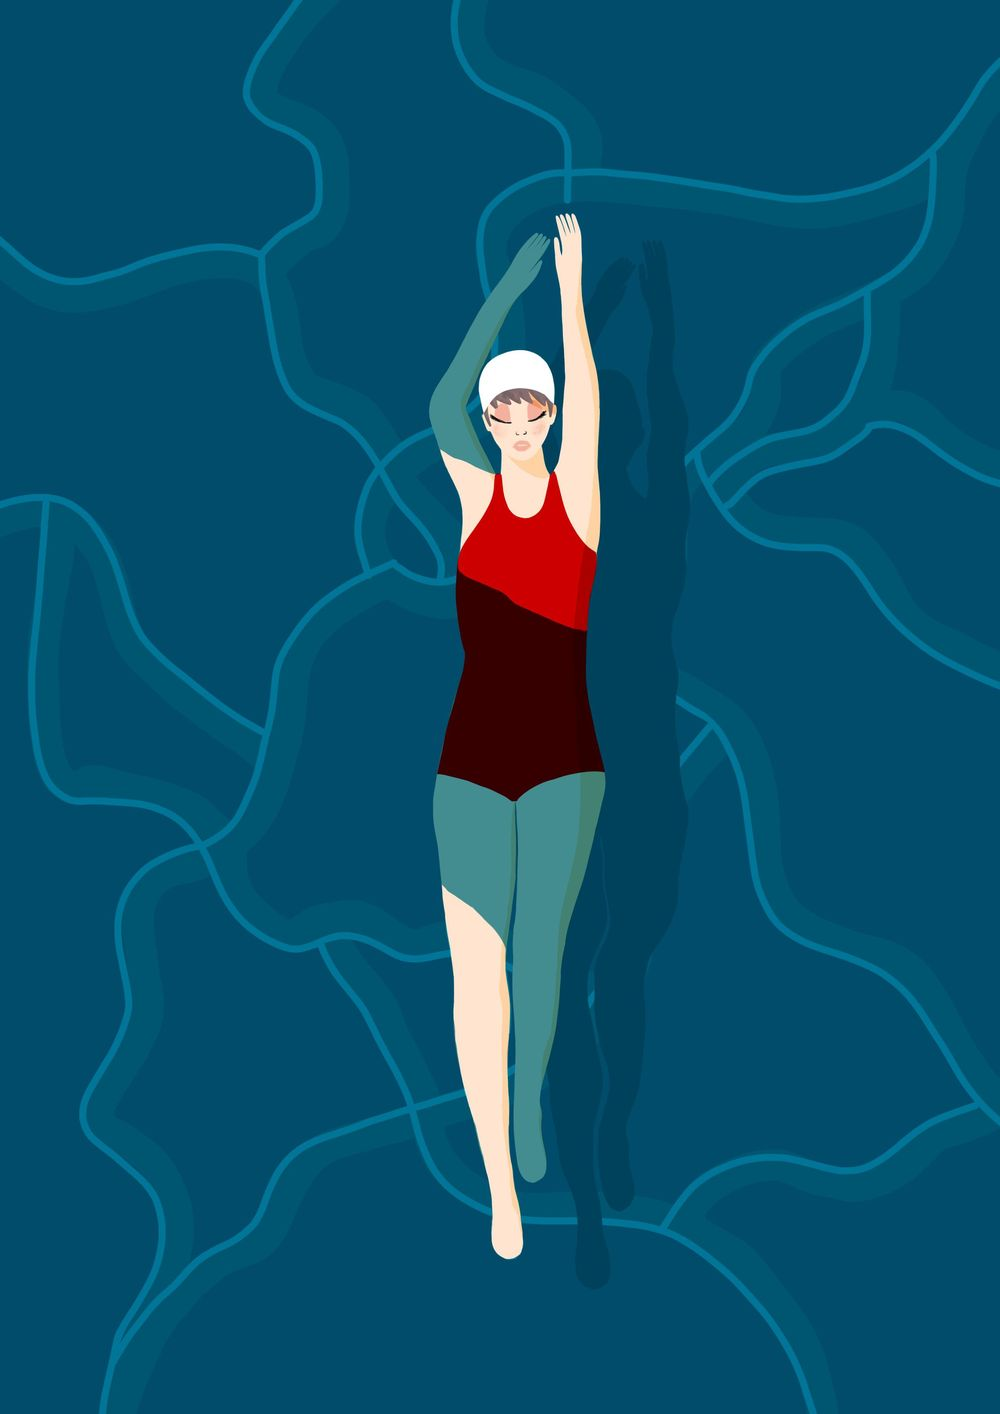 Swimmer Girl - image 2 - student project